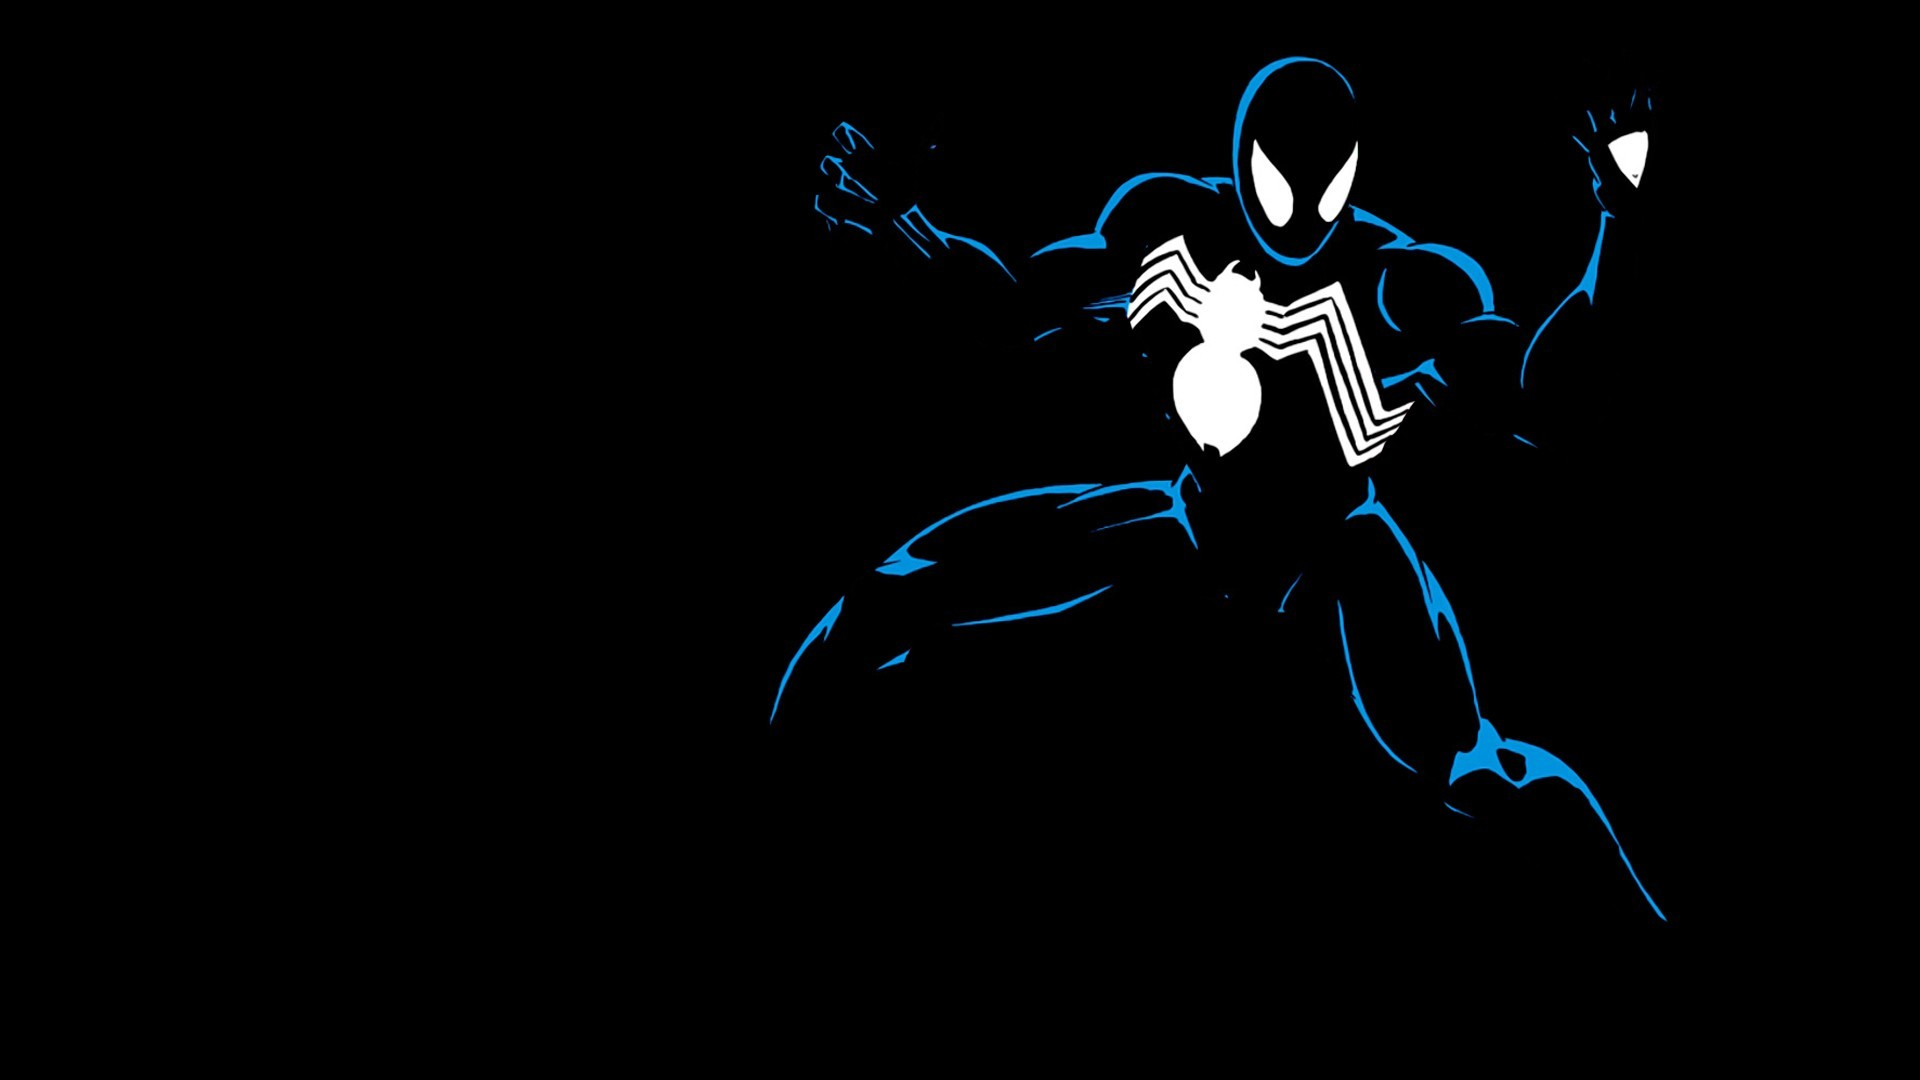 symbiote spiderman wallpaper ·①